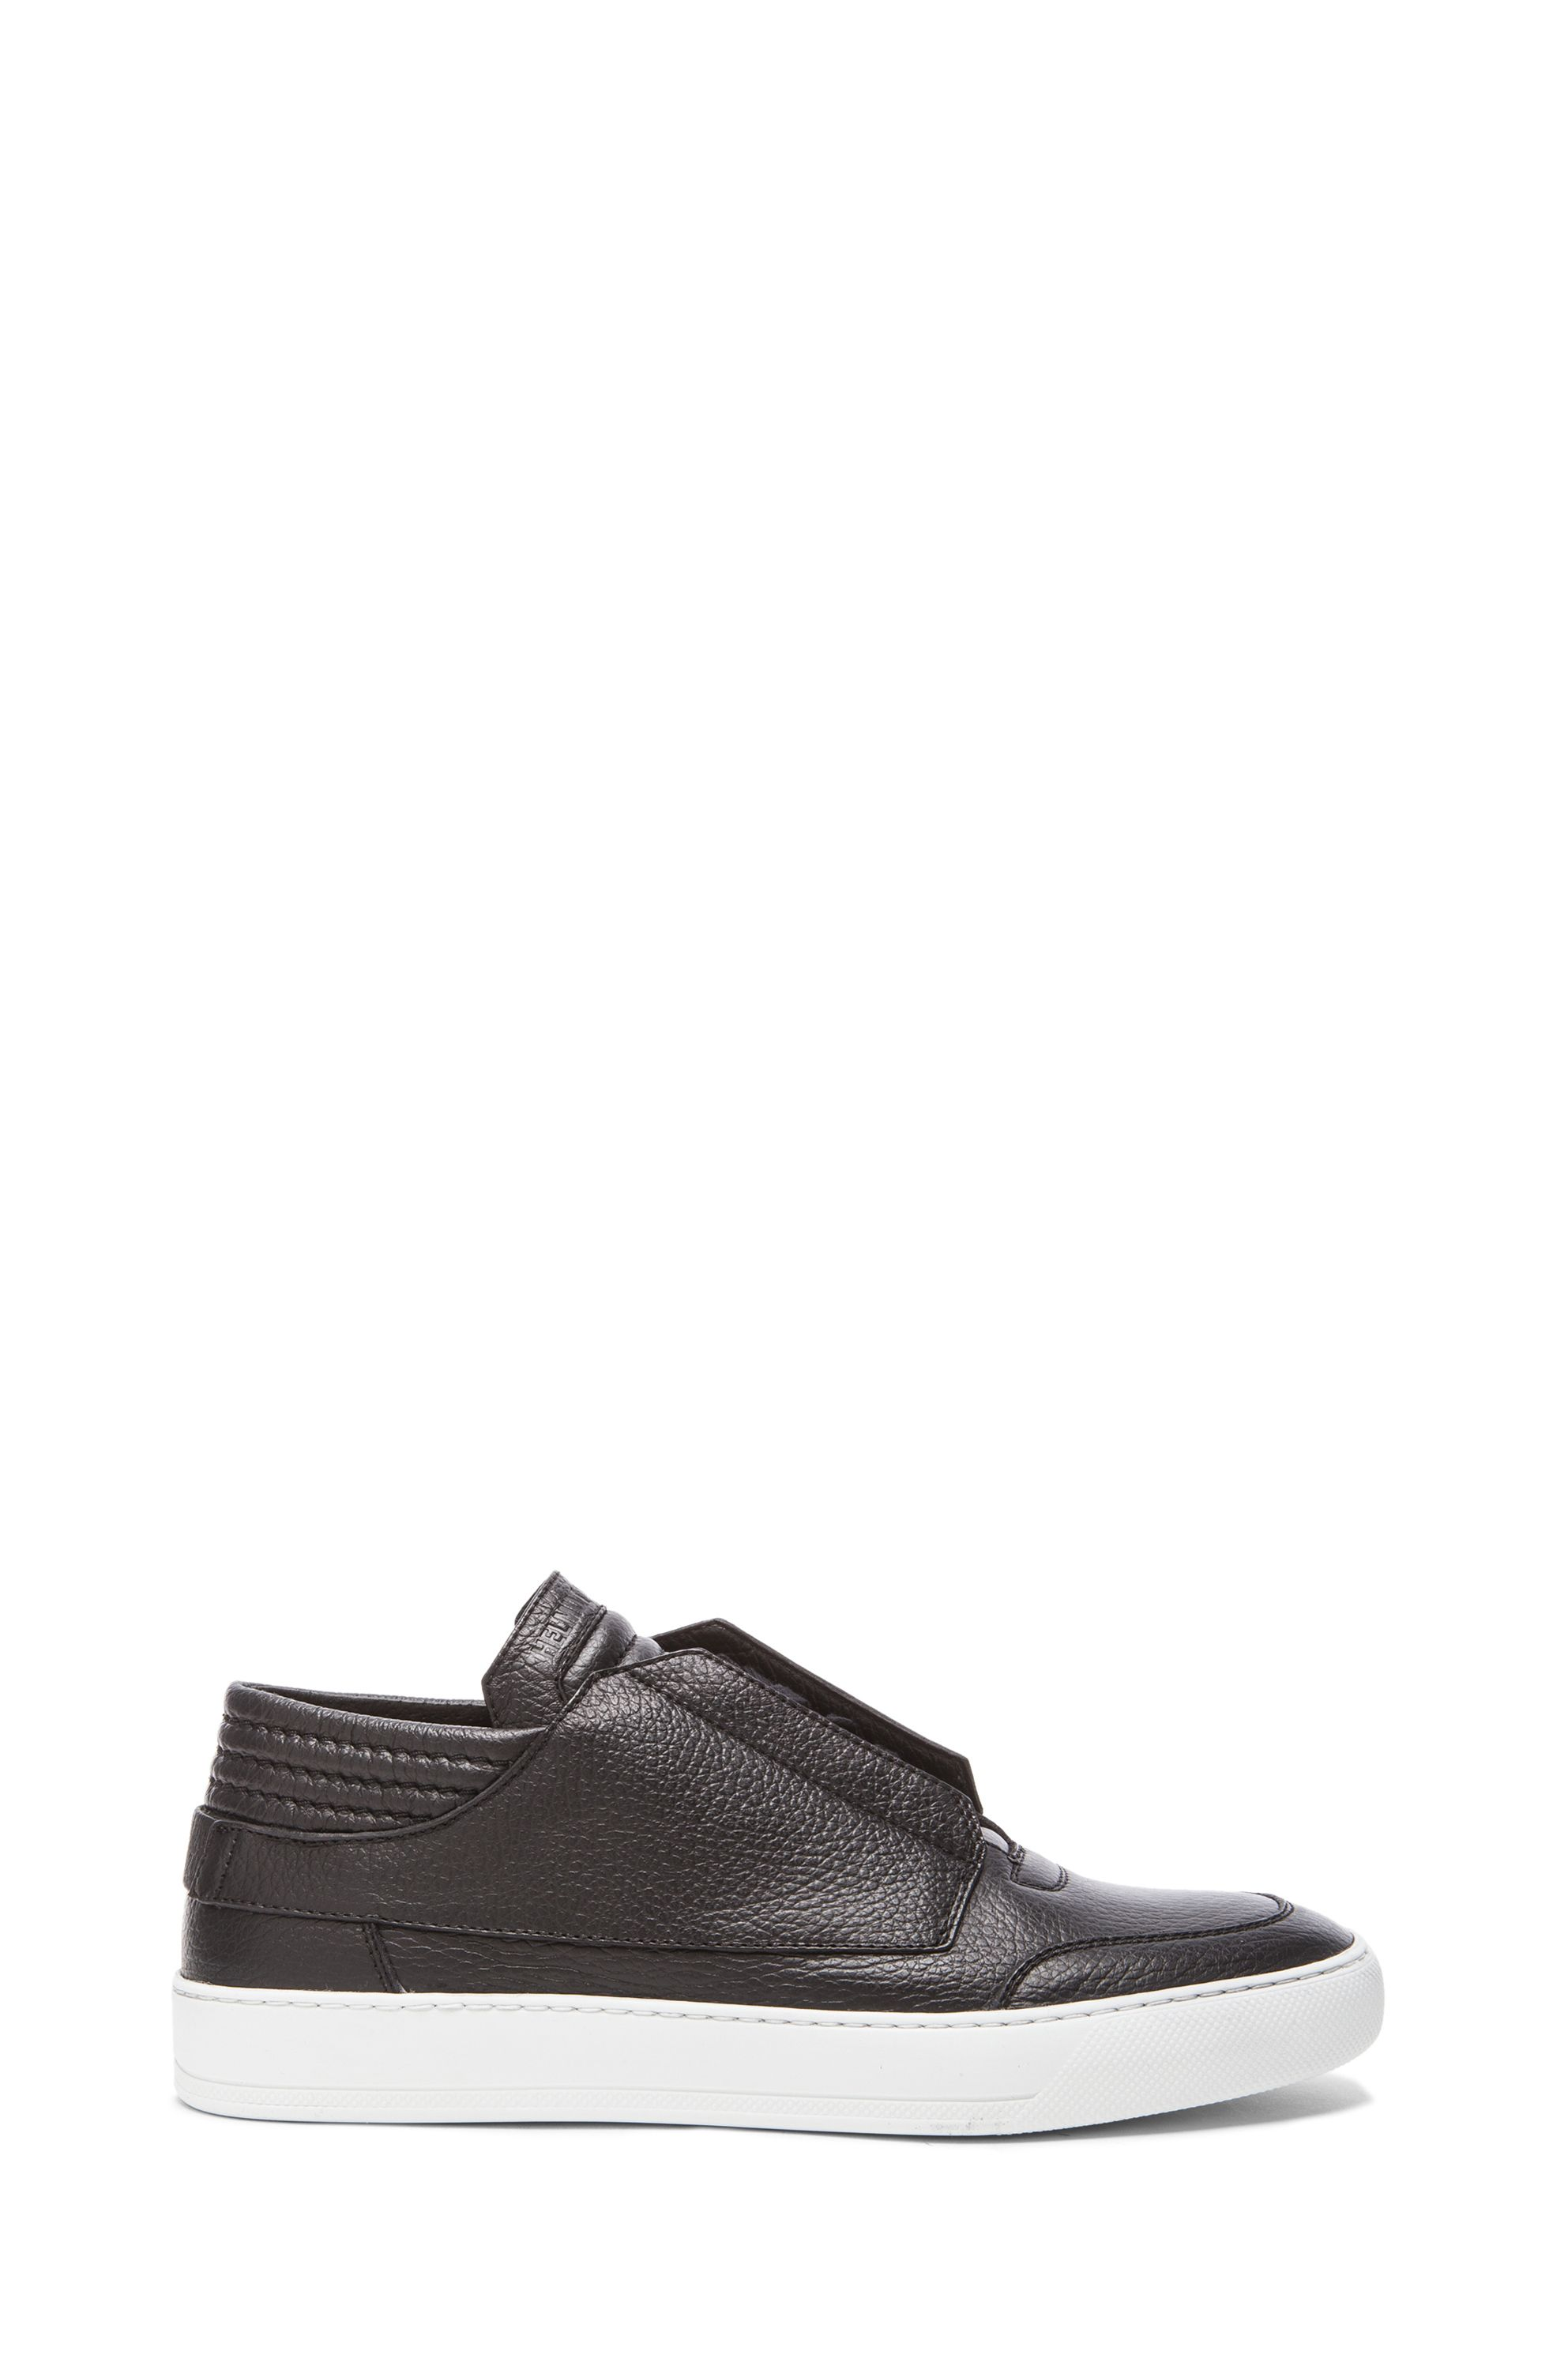 Image 2 of Helmut Lang Low Top Textured Leather Sneakers in Black